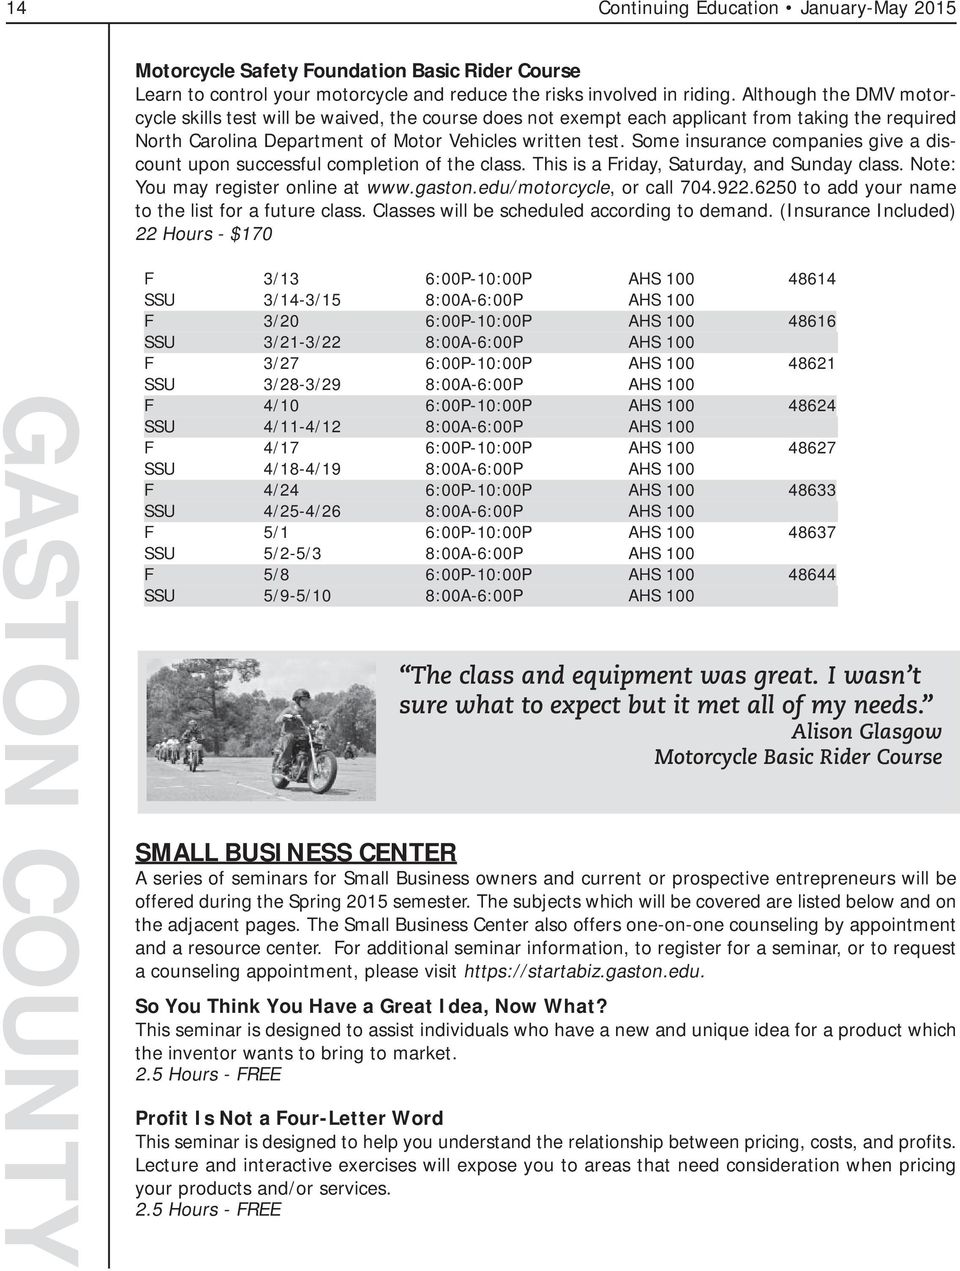 Some insurance companies give a discount upon successful completion of the class. This is a Friday, Saturday, and Sunday class. Note: You may register online at www.gaston.edu/motorcycle, or call 704.